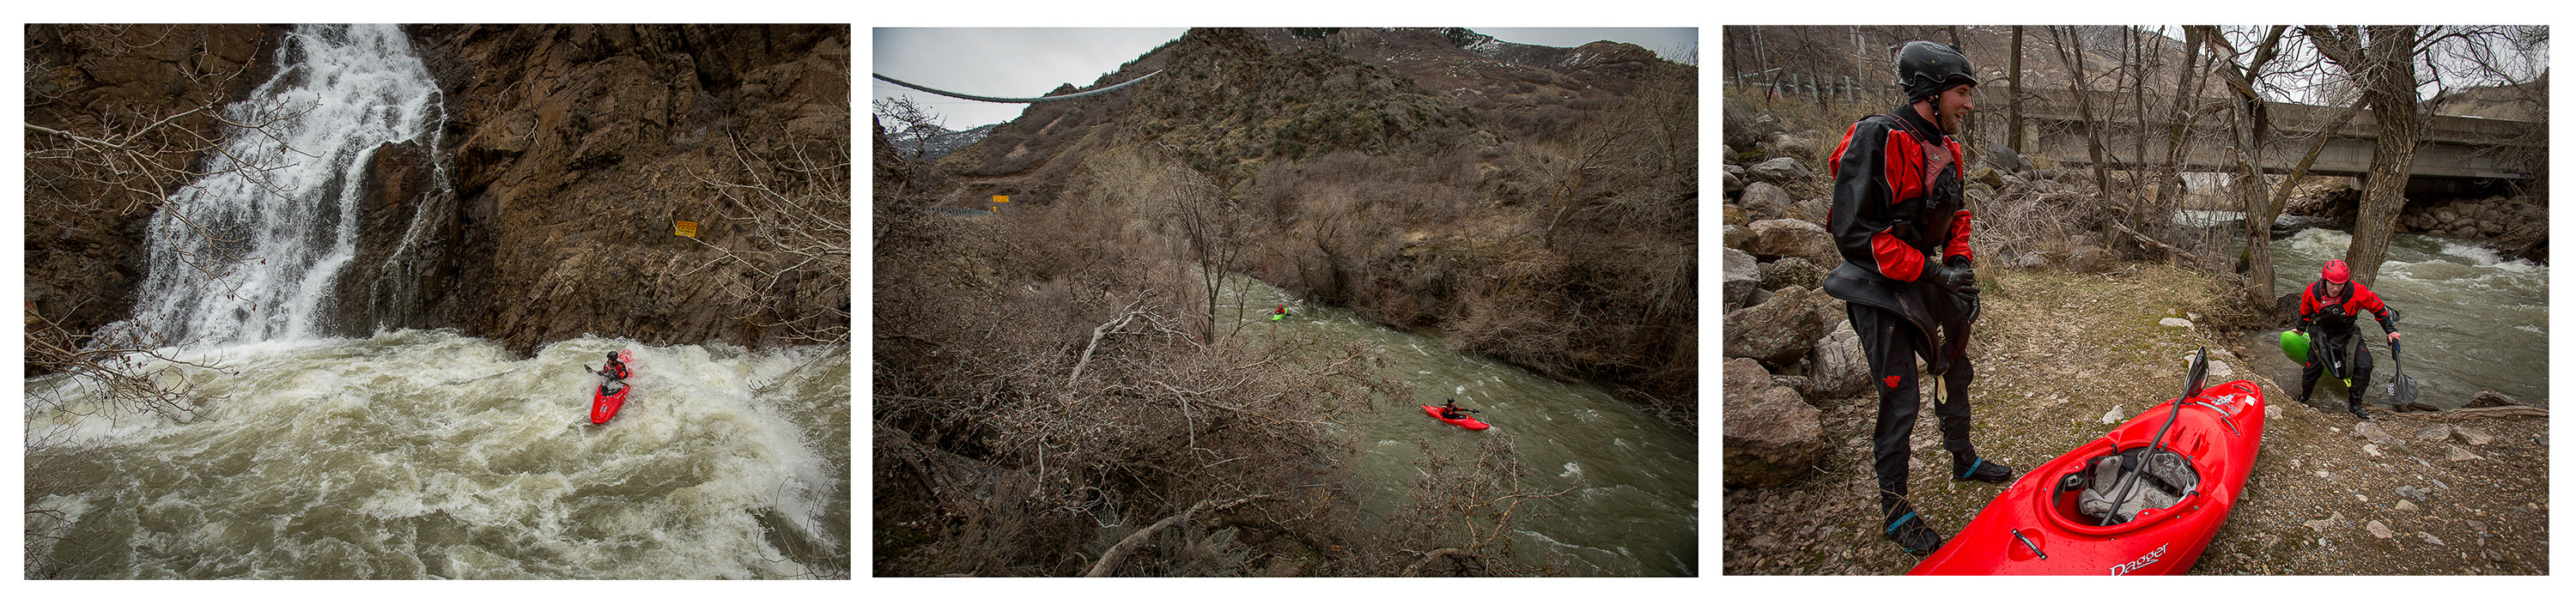 Kayakers paddle through The Narrows in Ogden Canyon as the Ogden River reaches levels that haven't been seen in years on Saturday, Feb. 18, 2017.